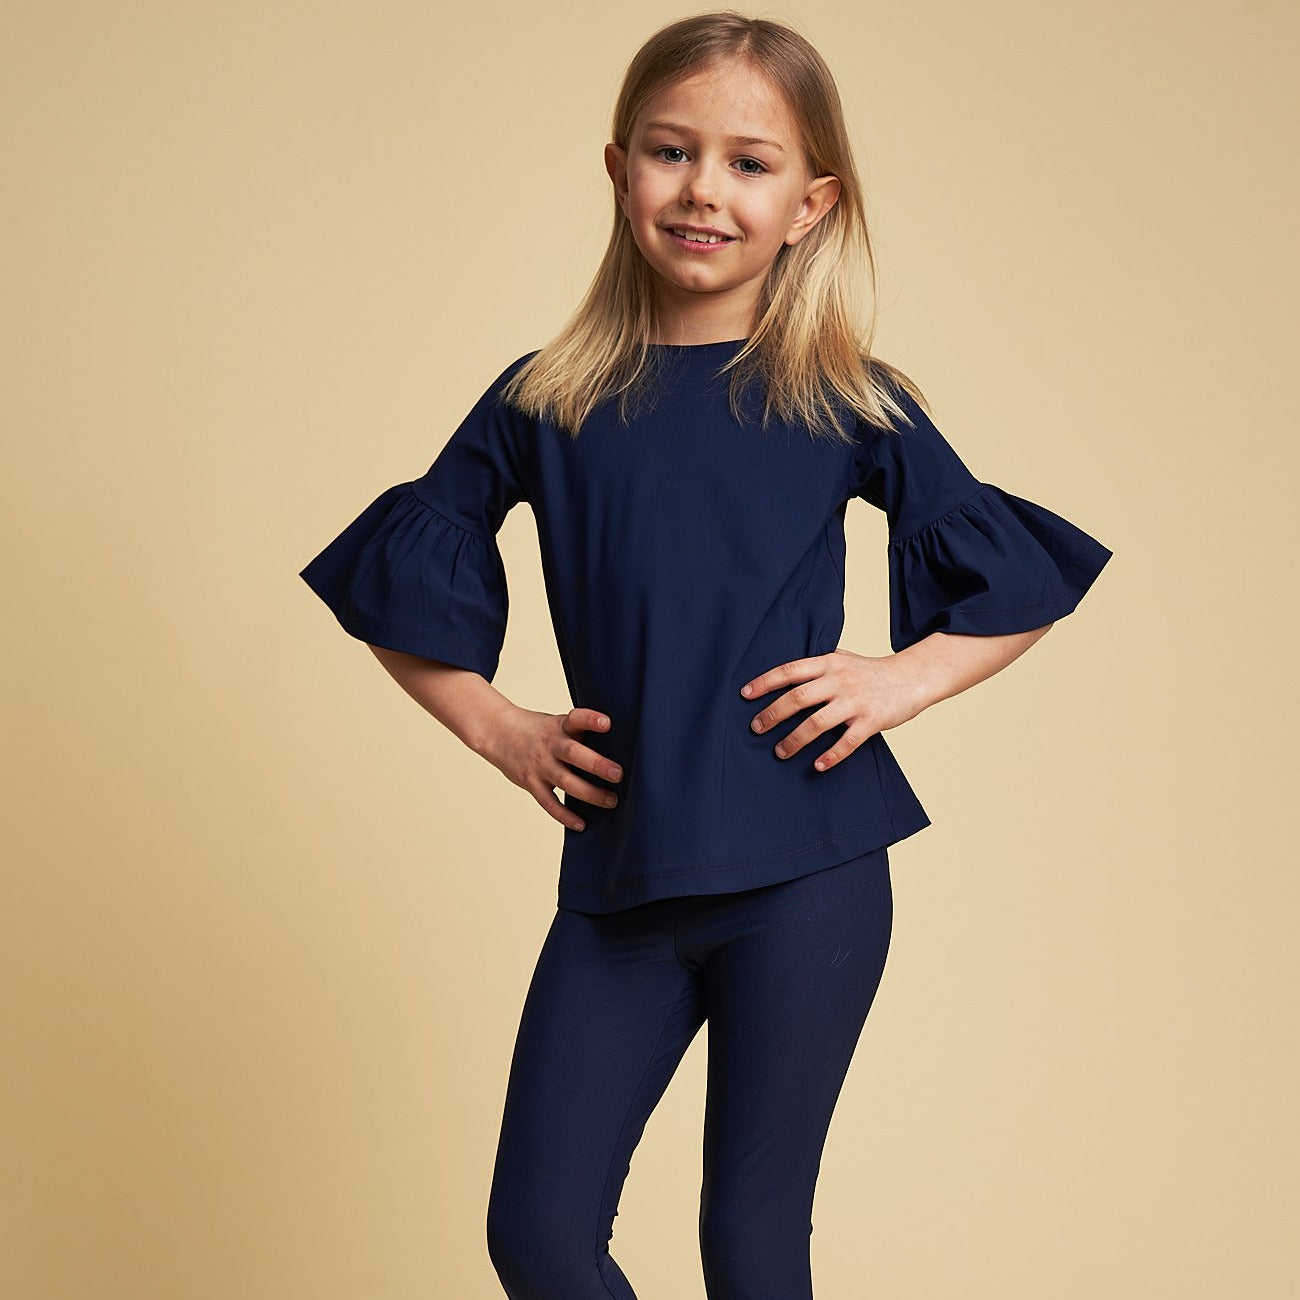 Emilia UV top in Navy